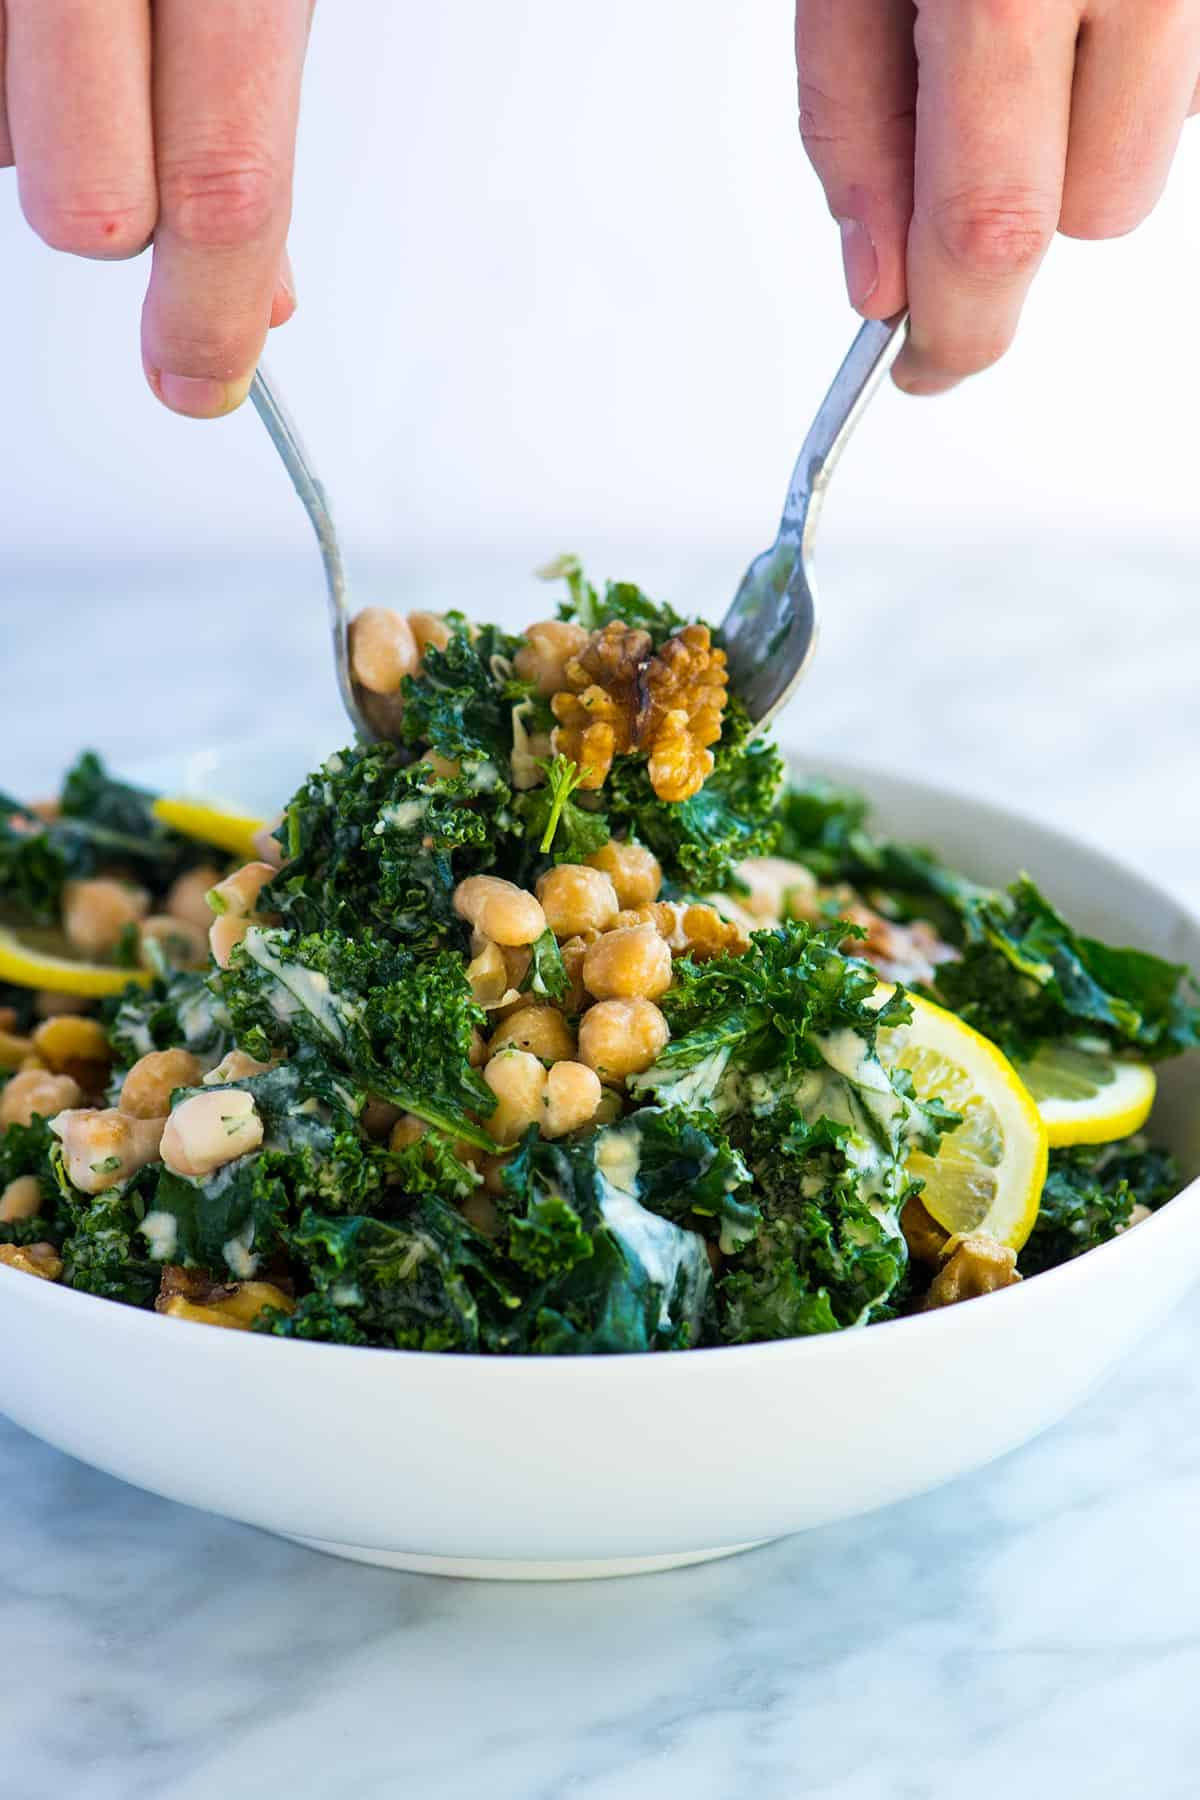 This easy kale and bean salad is packed with good for you ingredients, is practically crave-worthy and can be made in advance.